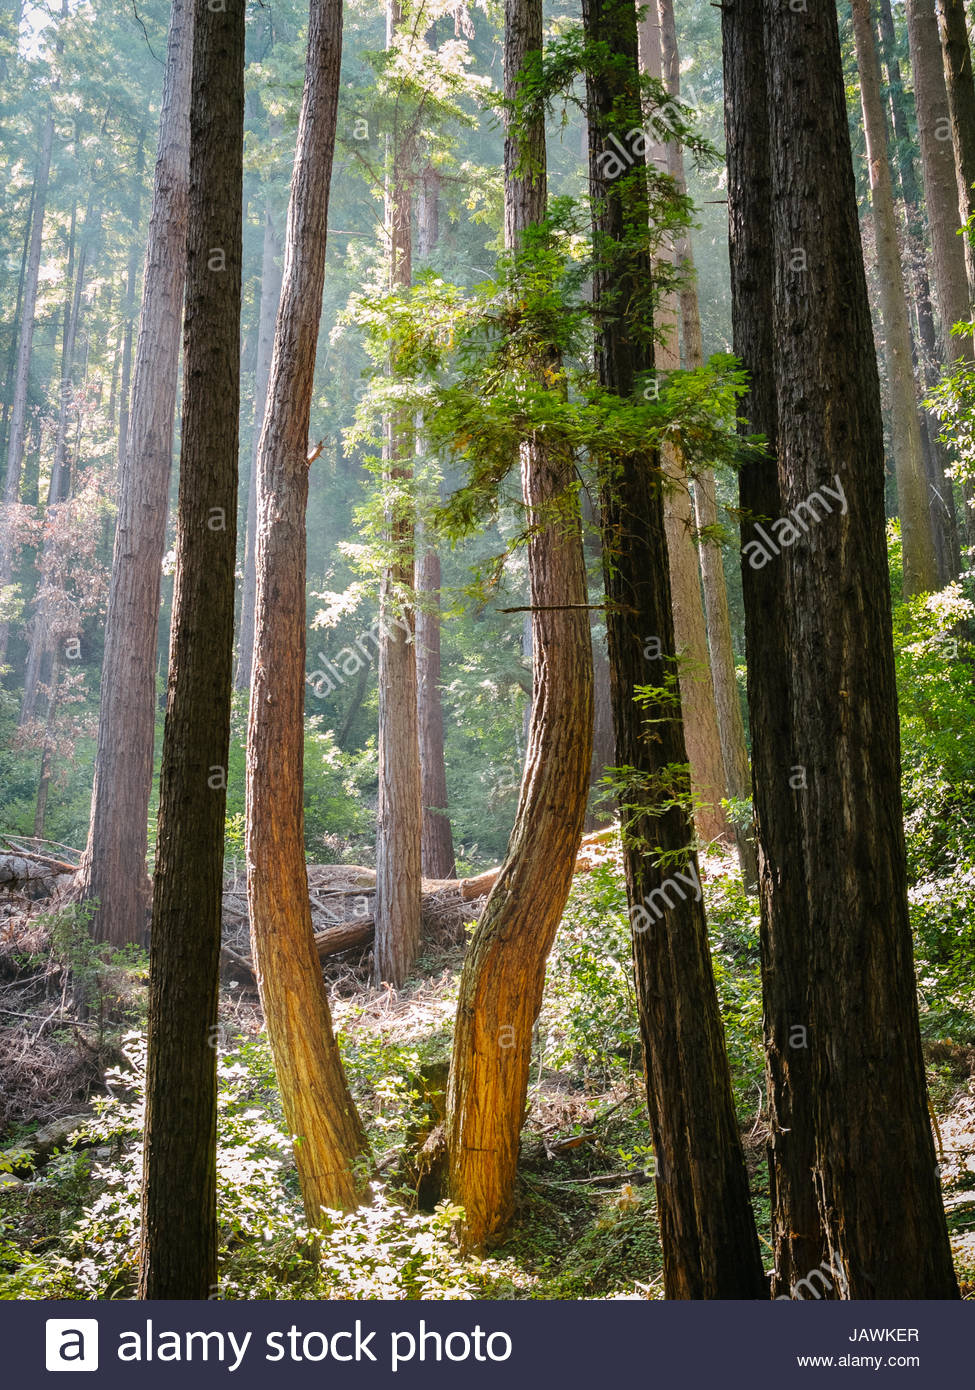 A redwood grove in Henry Cowell Redwoods State Park. - Stock Image